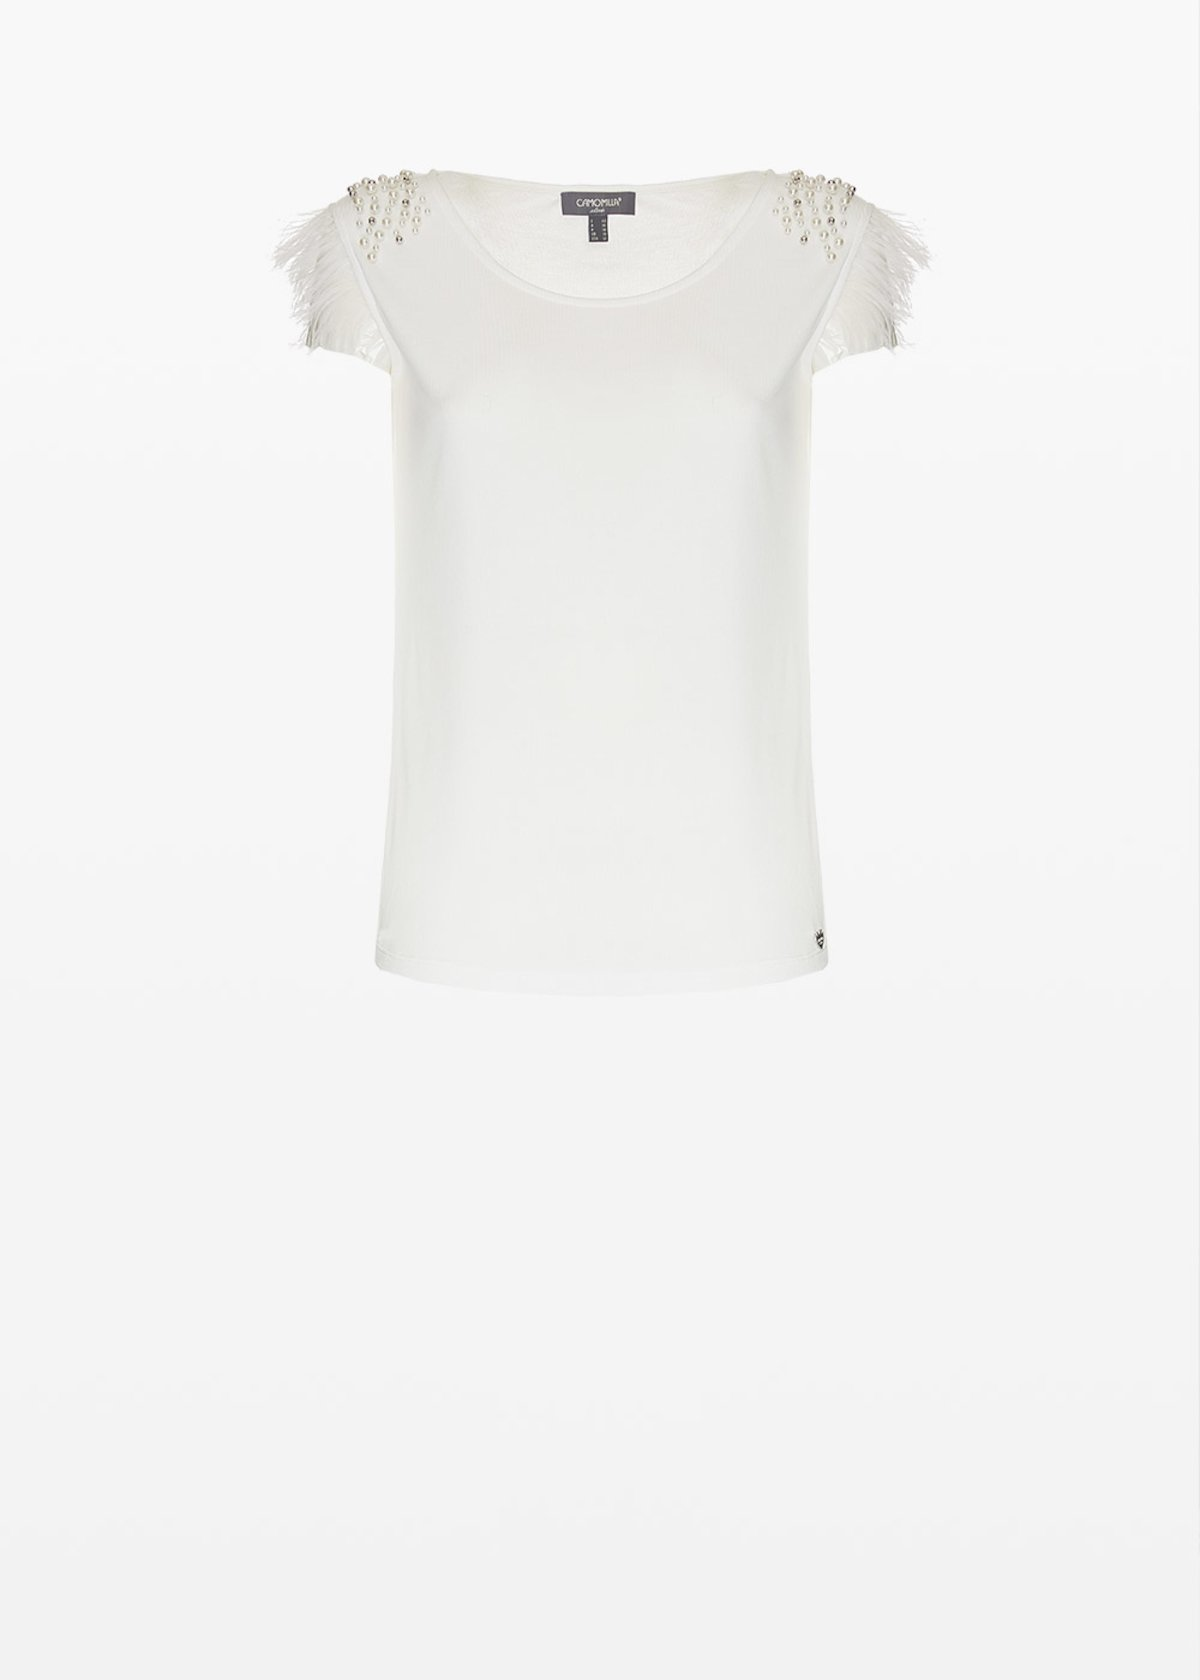 Tamir jersey top with pearls and feathers detail - White - Woman - Category image